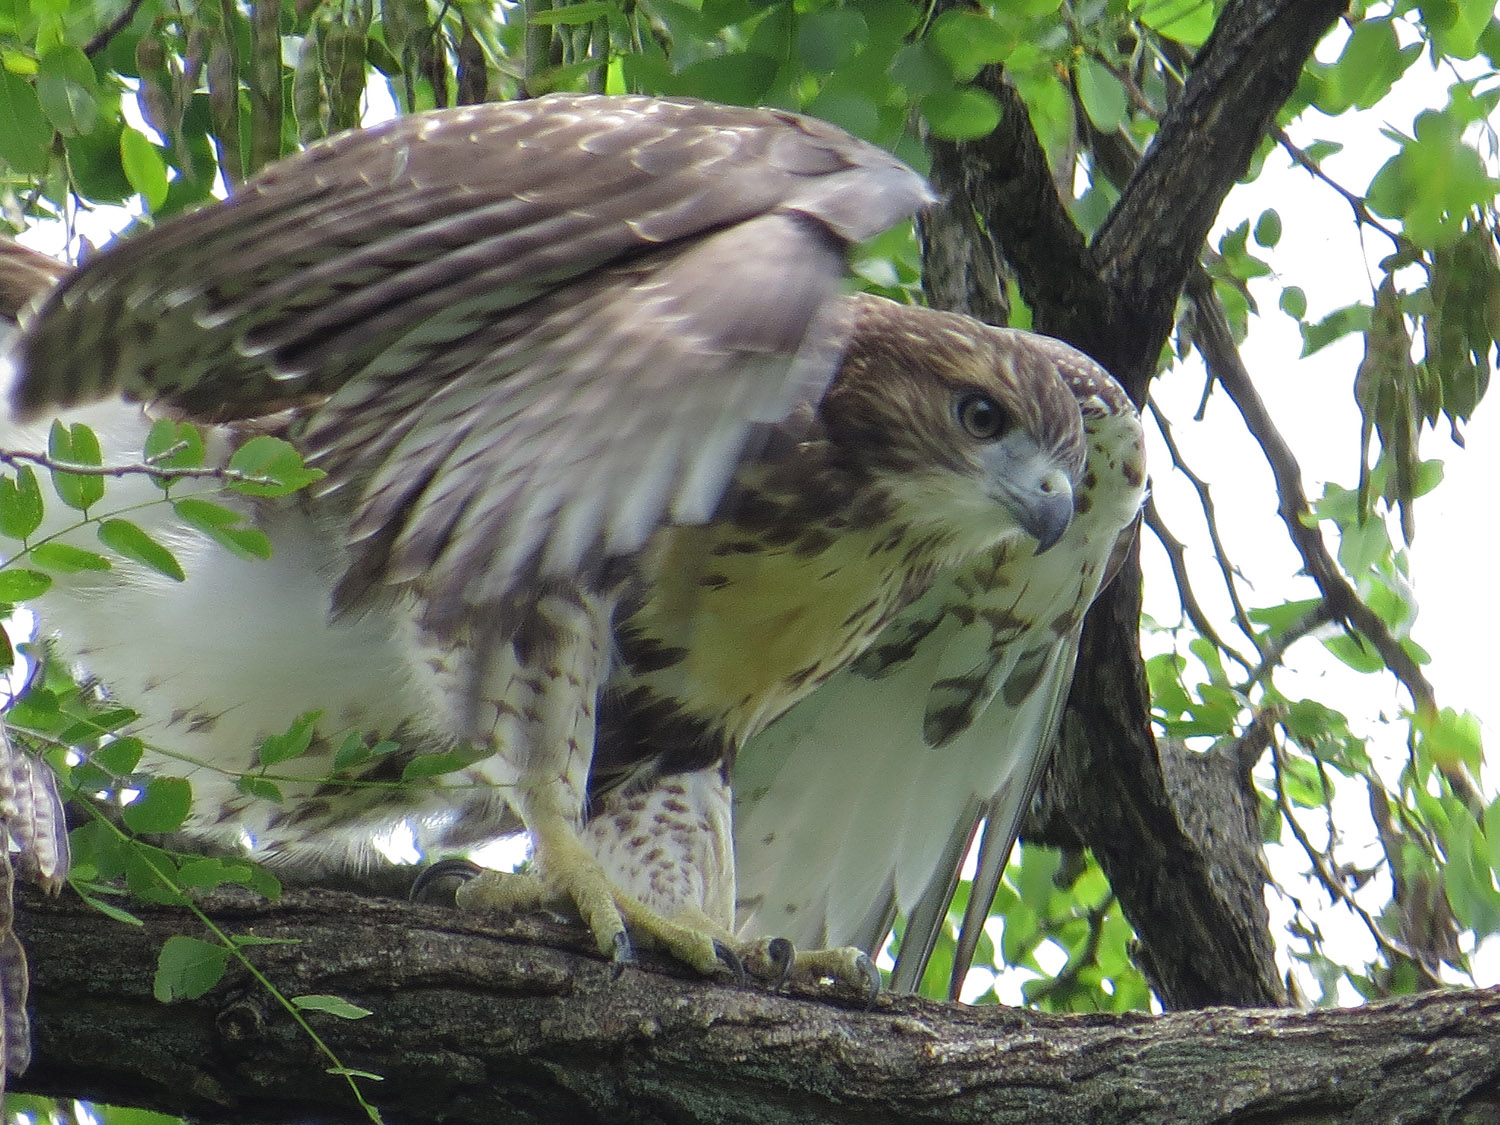 Tompkins Square Park fledgling, July 1, 2016.